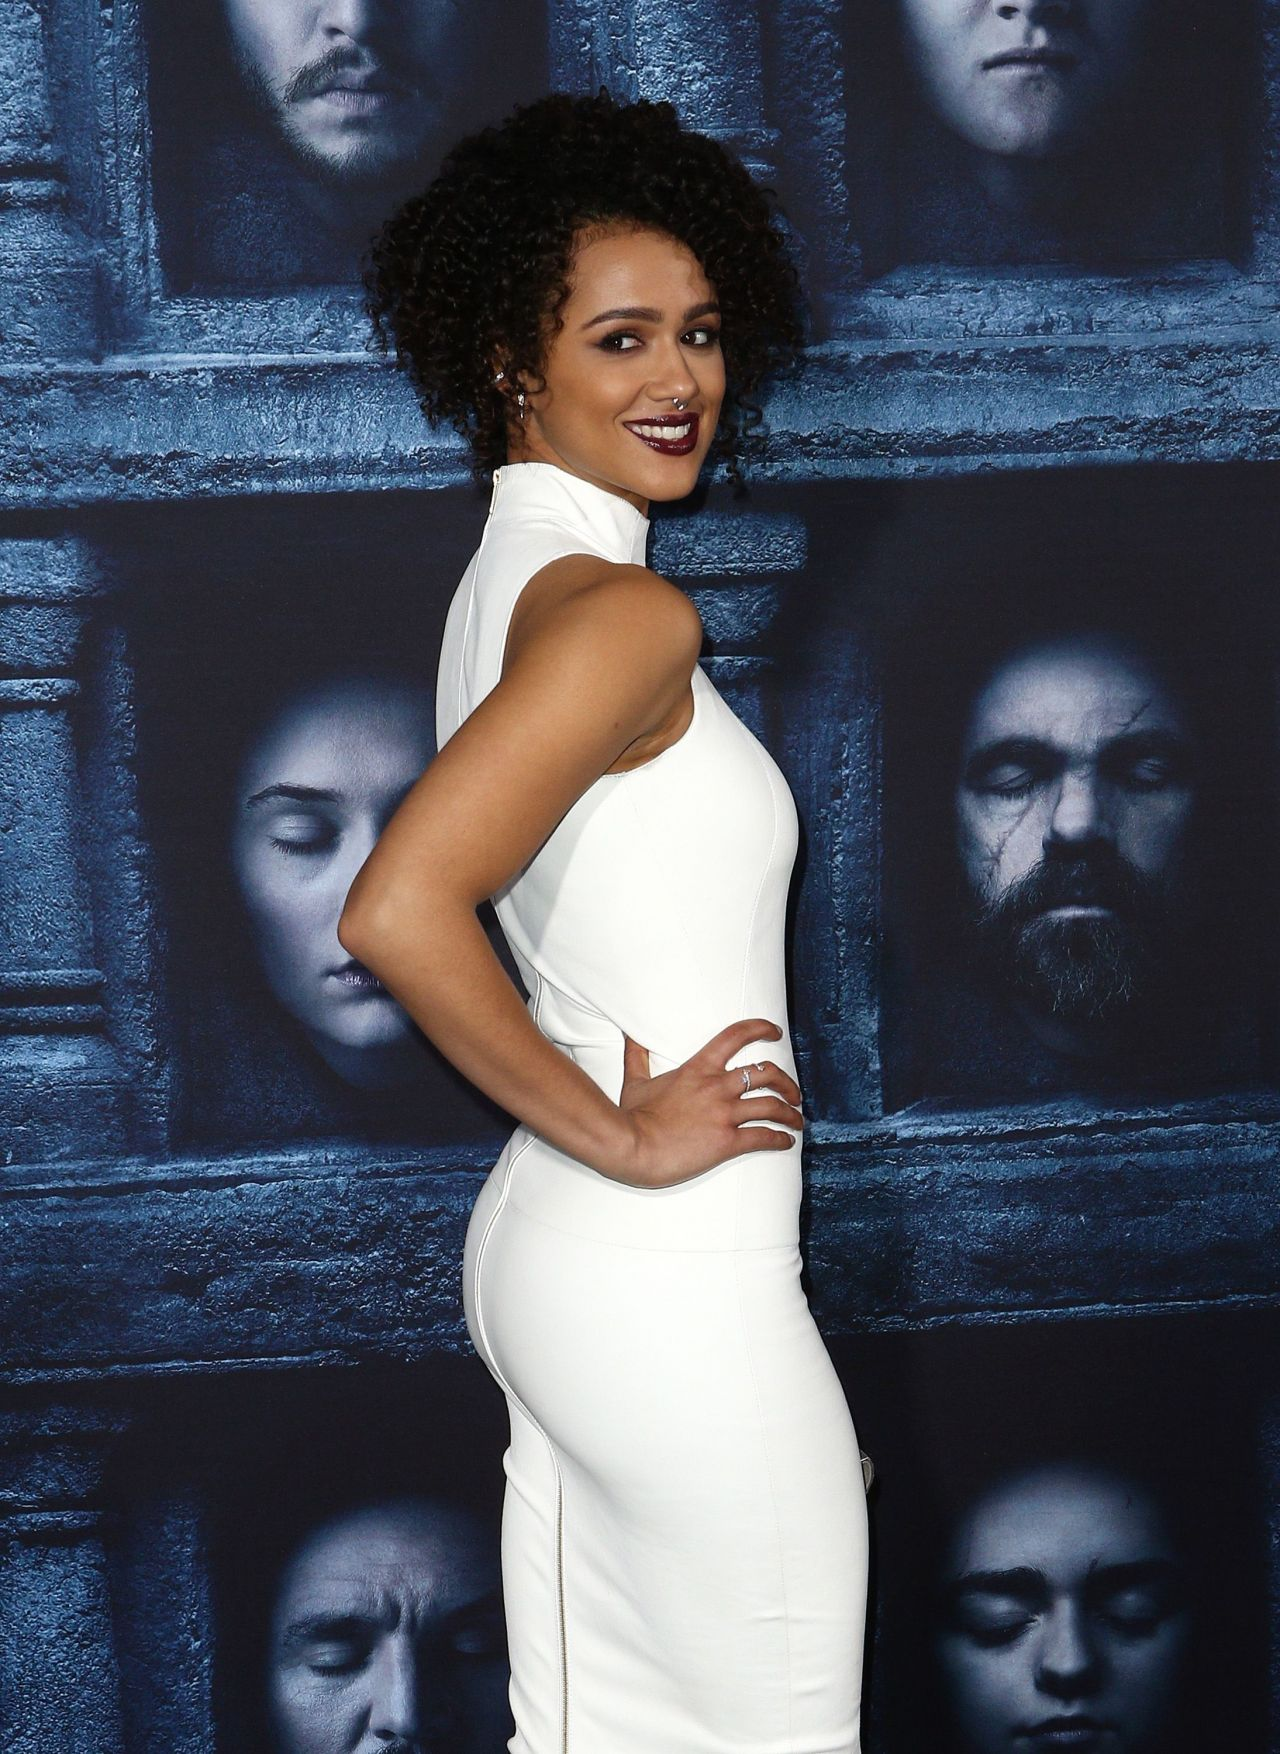 Nathalie Emmanuel Game Of Thrones Season 6 Premiere In